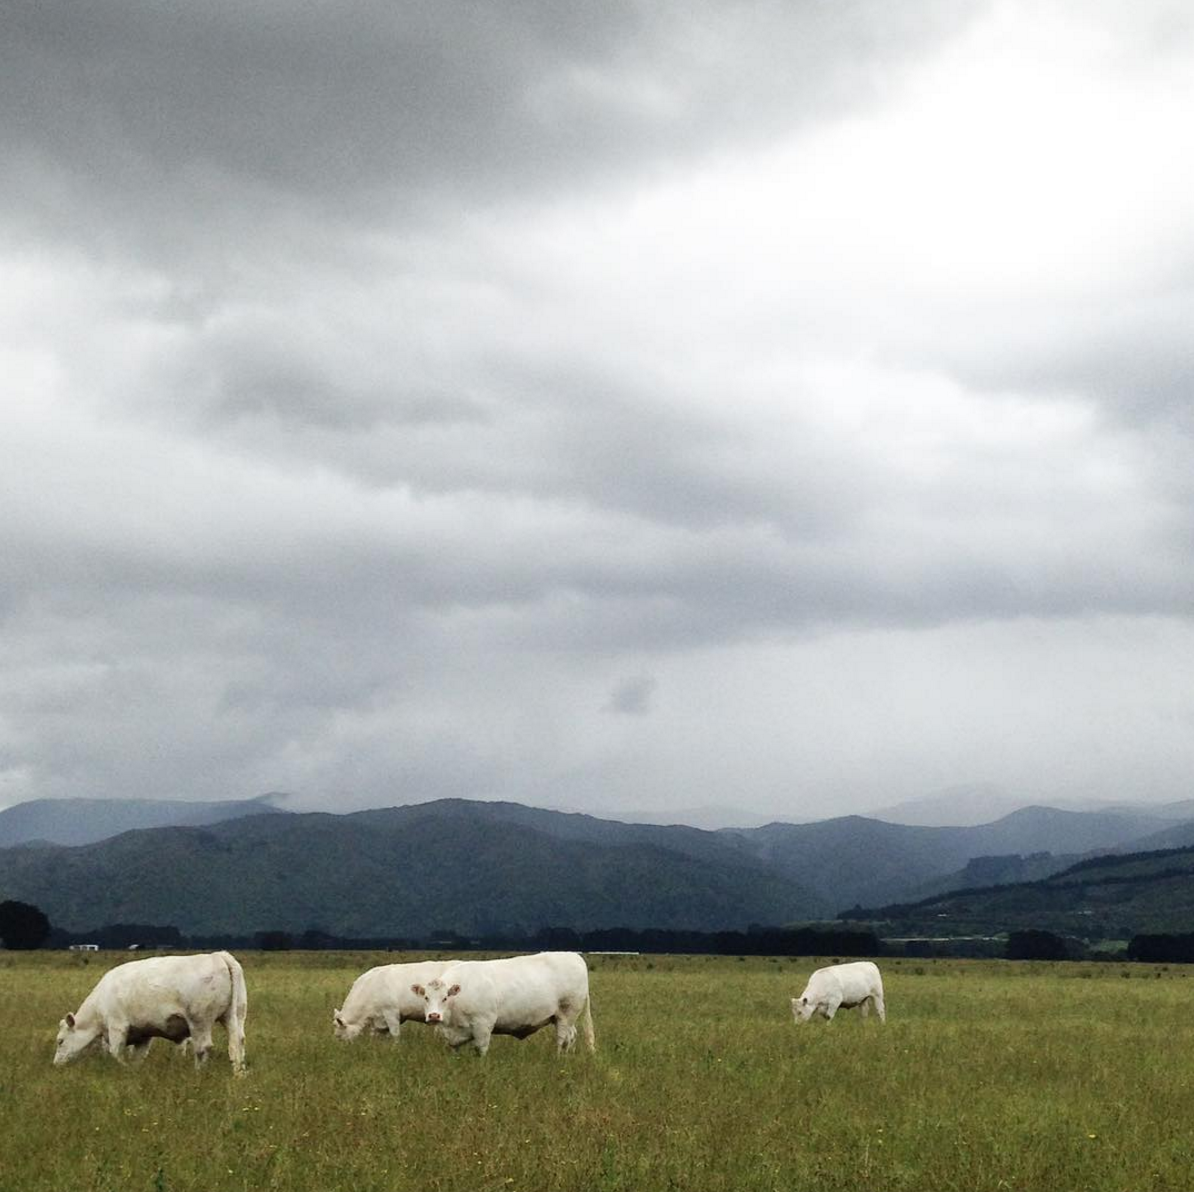 Herd of albino bovine.